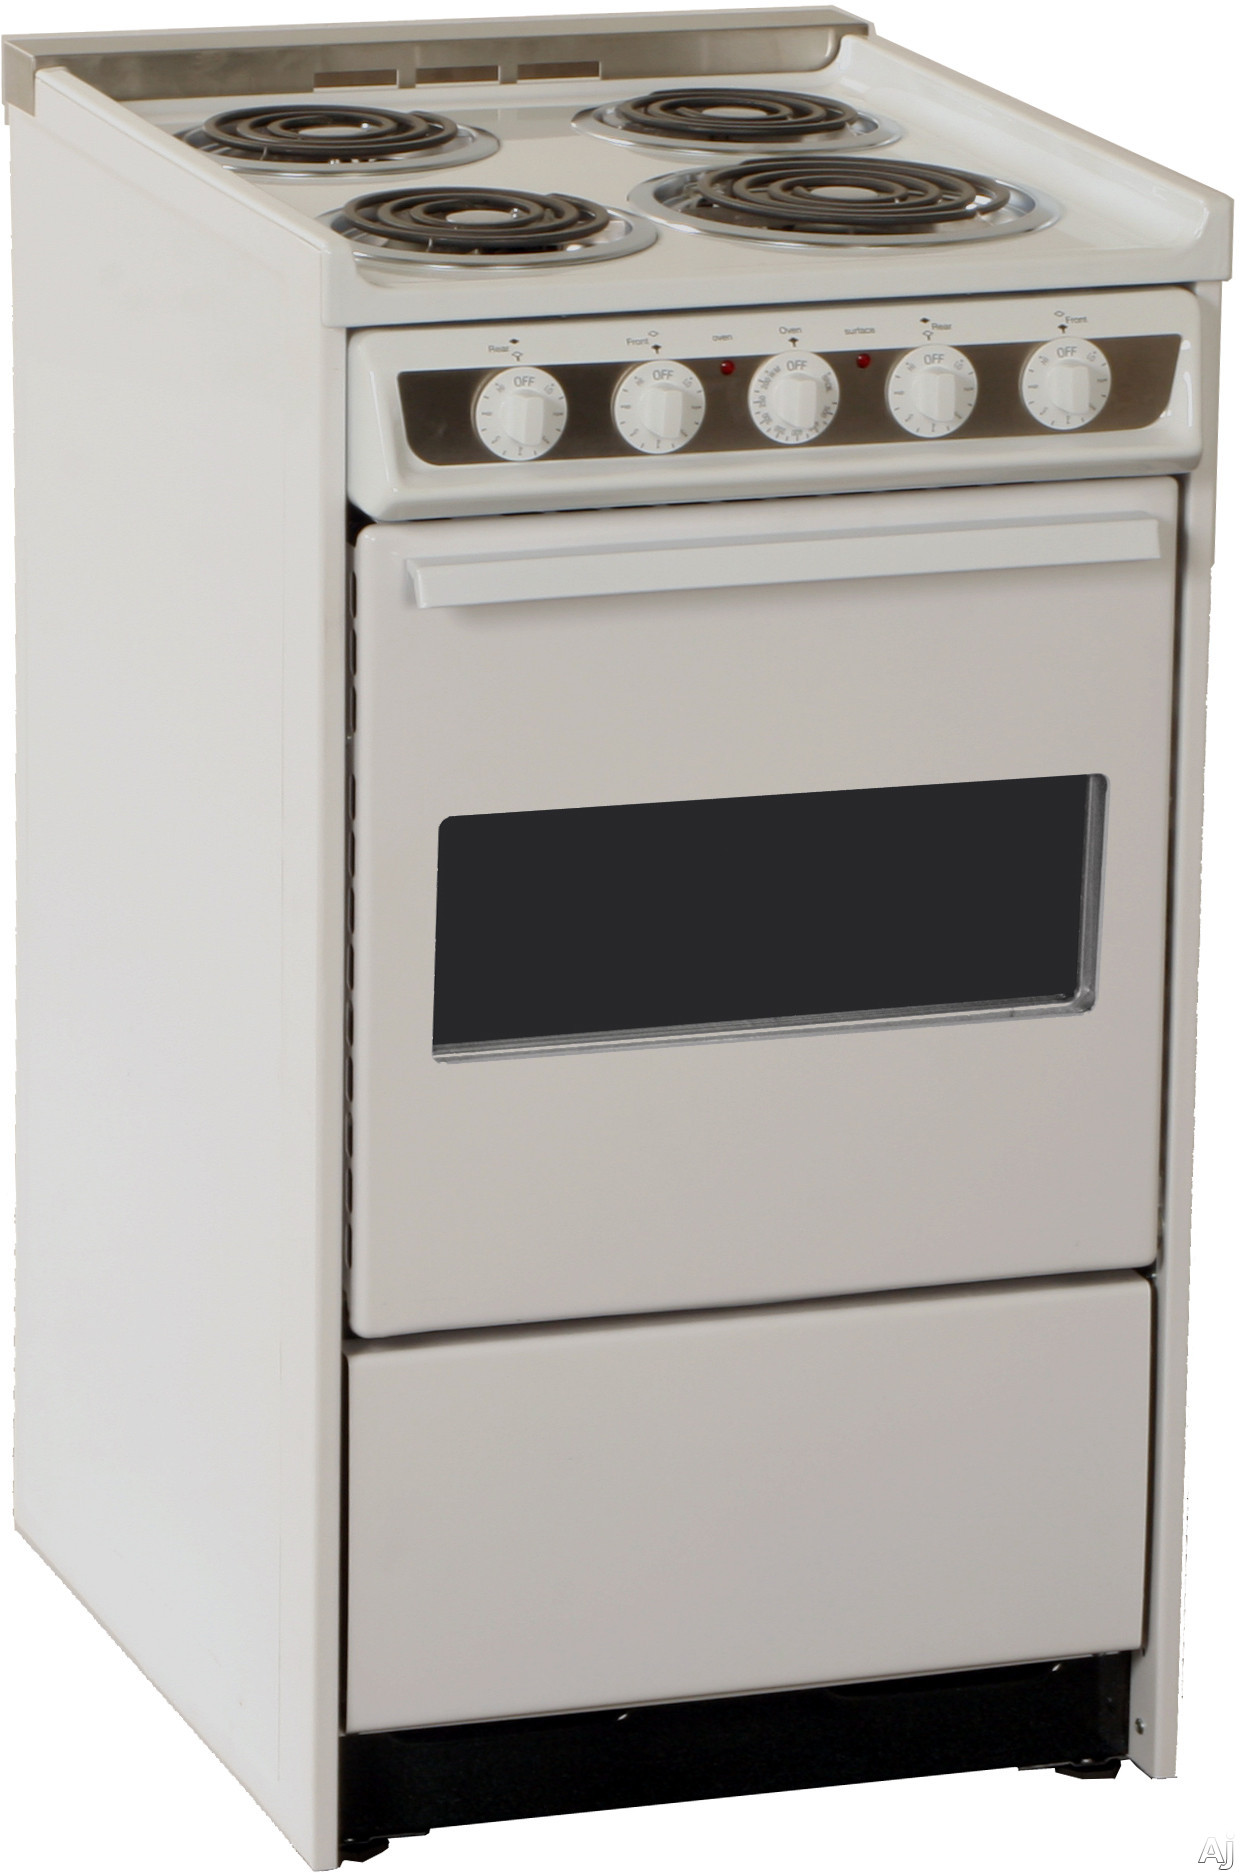 20 oven usa - Clean oven tray less minute ...